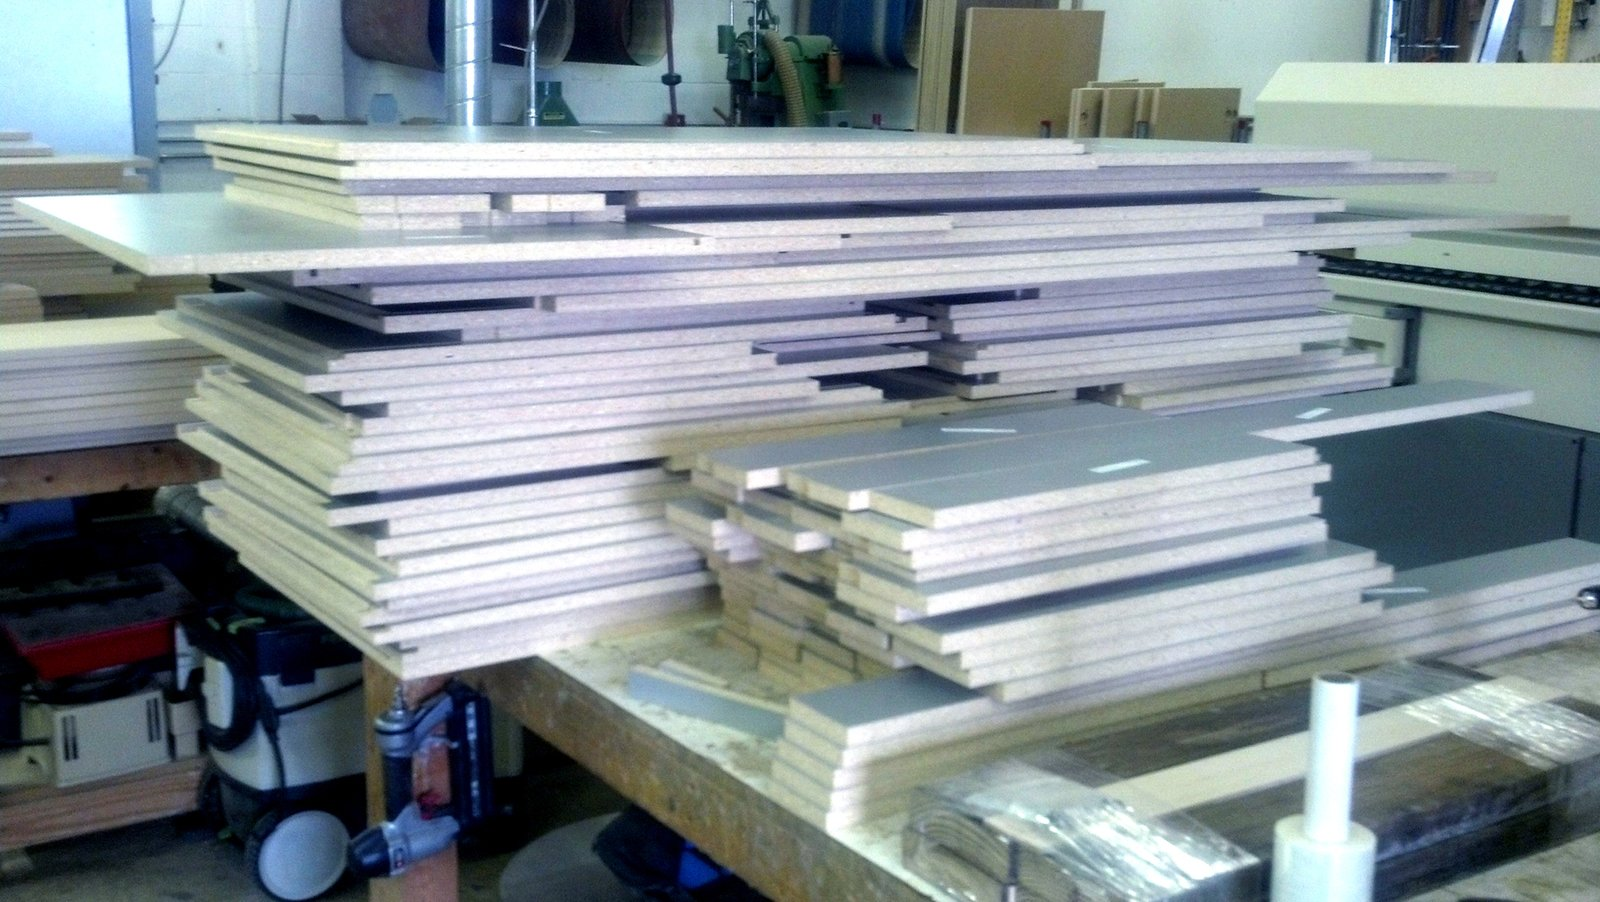 Cabinet components are stacked up ready to be joined into boxes or delivered as panels for interior cabinet shelving.  Photo 5 of 17 in Dwell Home Venice: Part 18